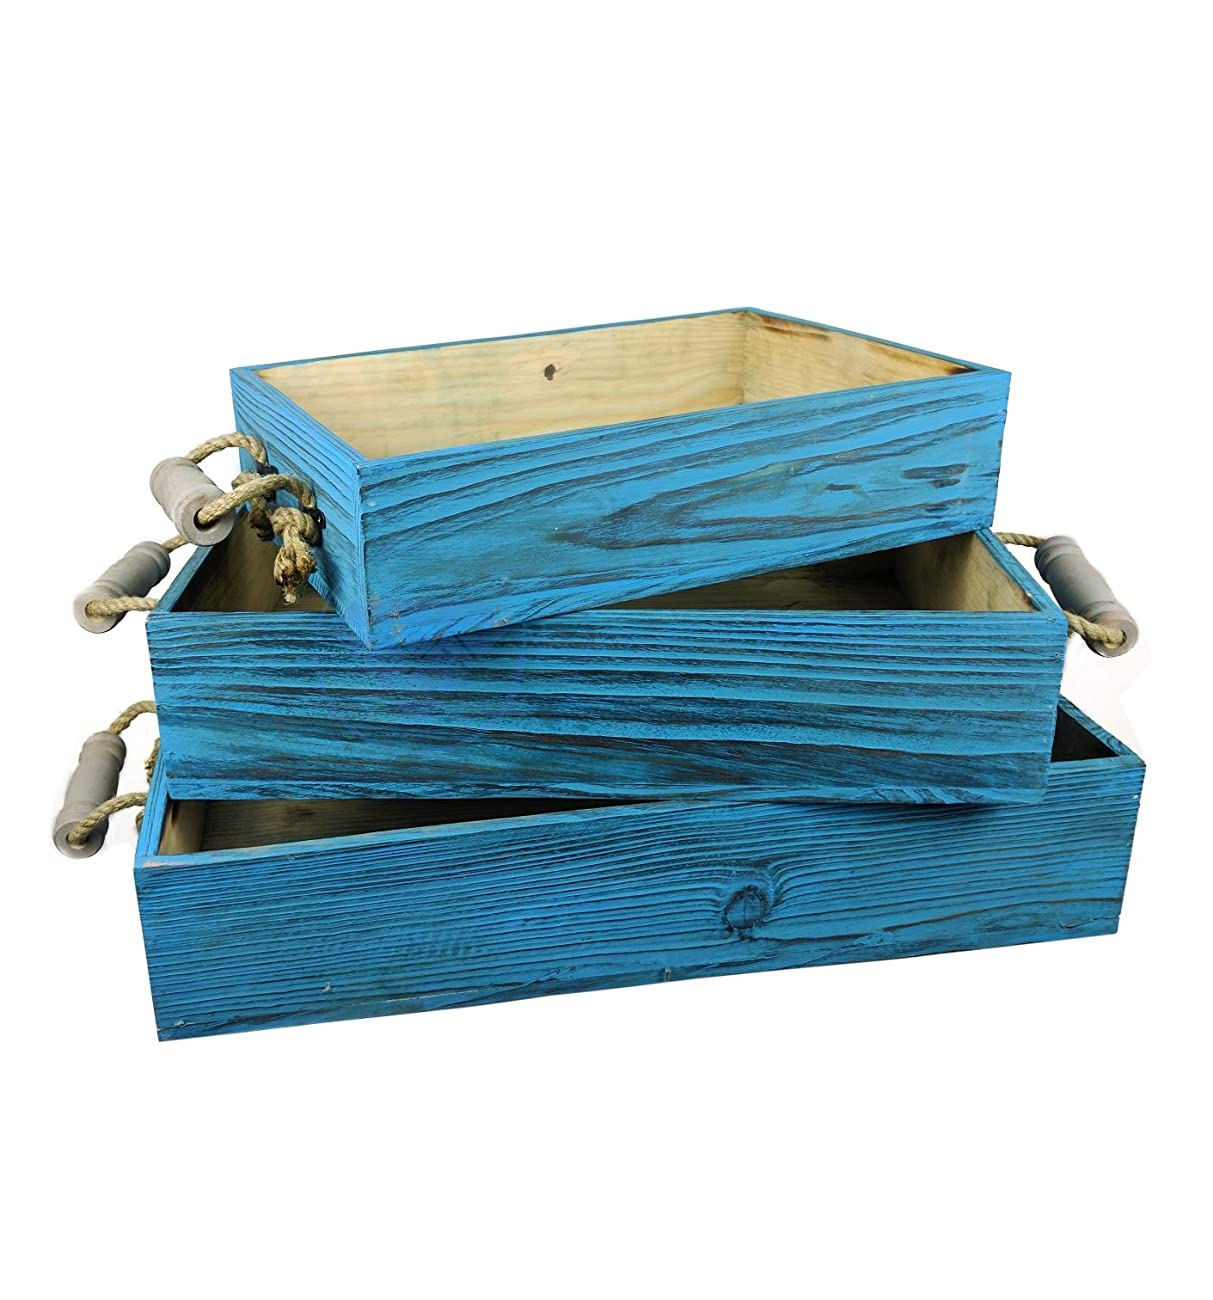 Vintage Rustic Wooden Crate Trays with Rope Handles- Set of 3 - Pirate Home Decor Gift - Nagina International 0